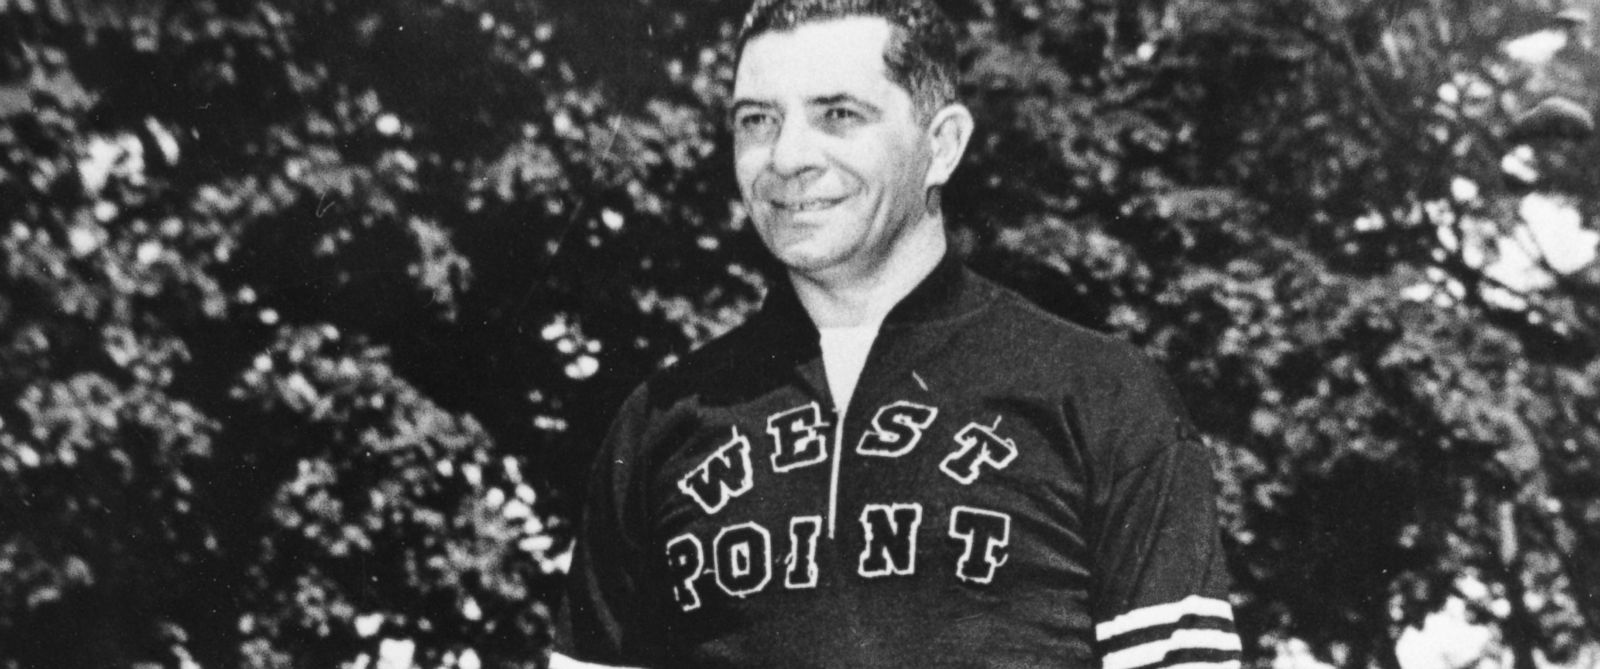 PHOTO: Vince Lombardi was an assistant football coach at West Point, starting in 1948